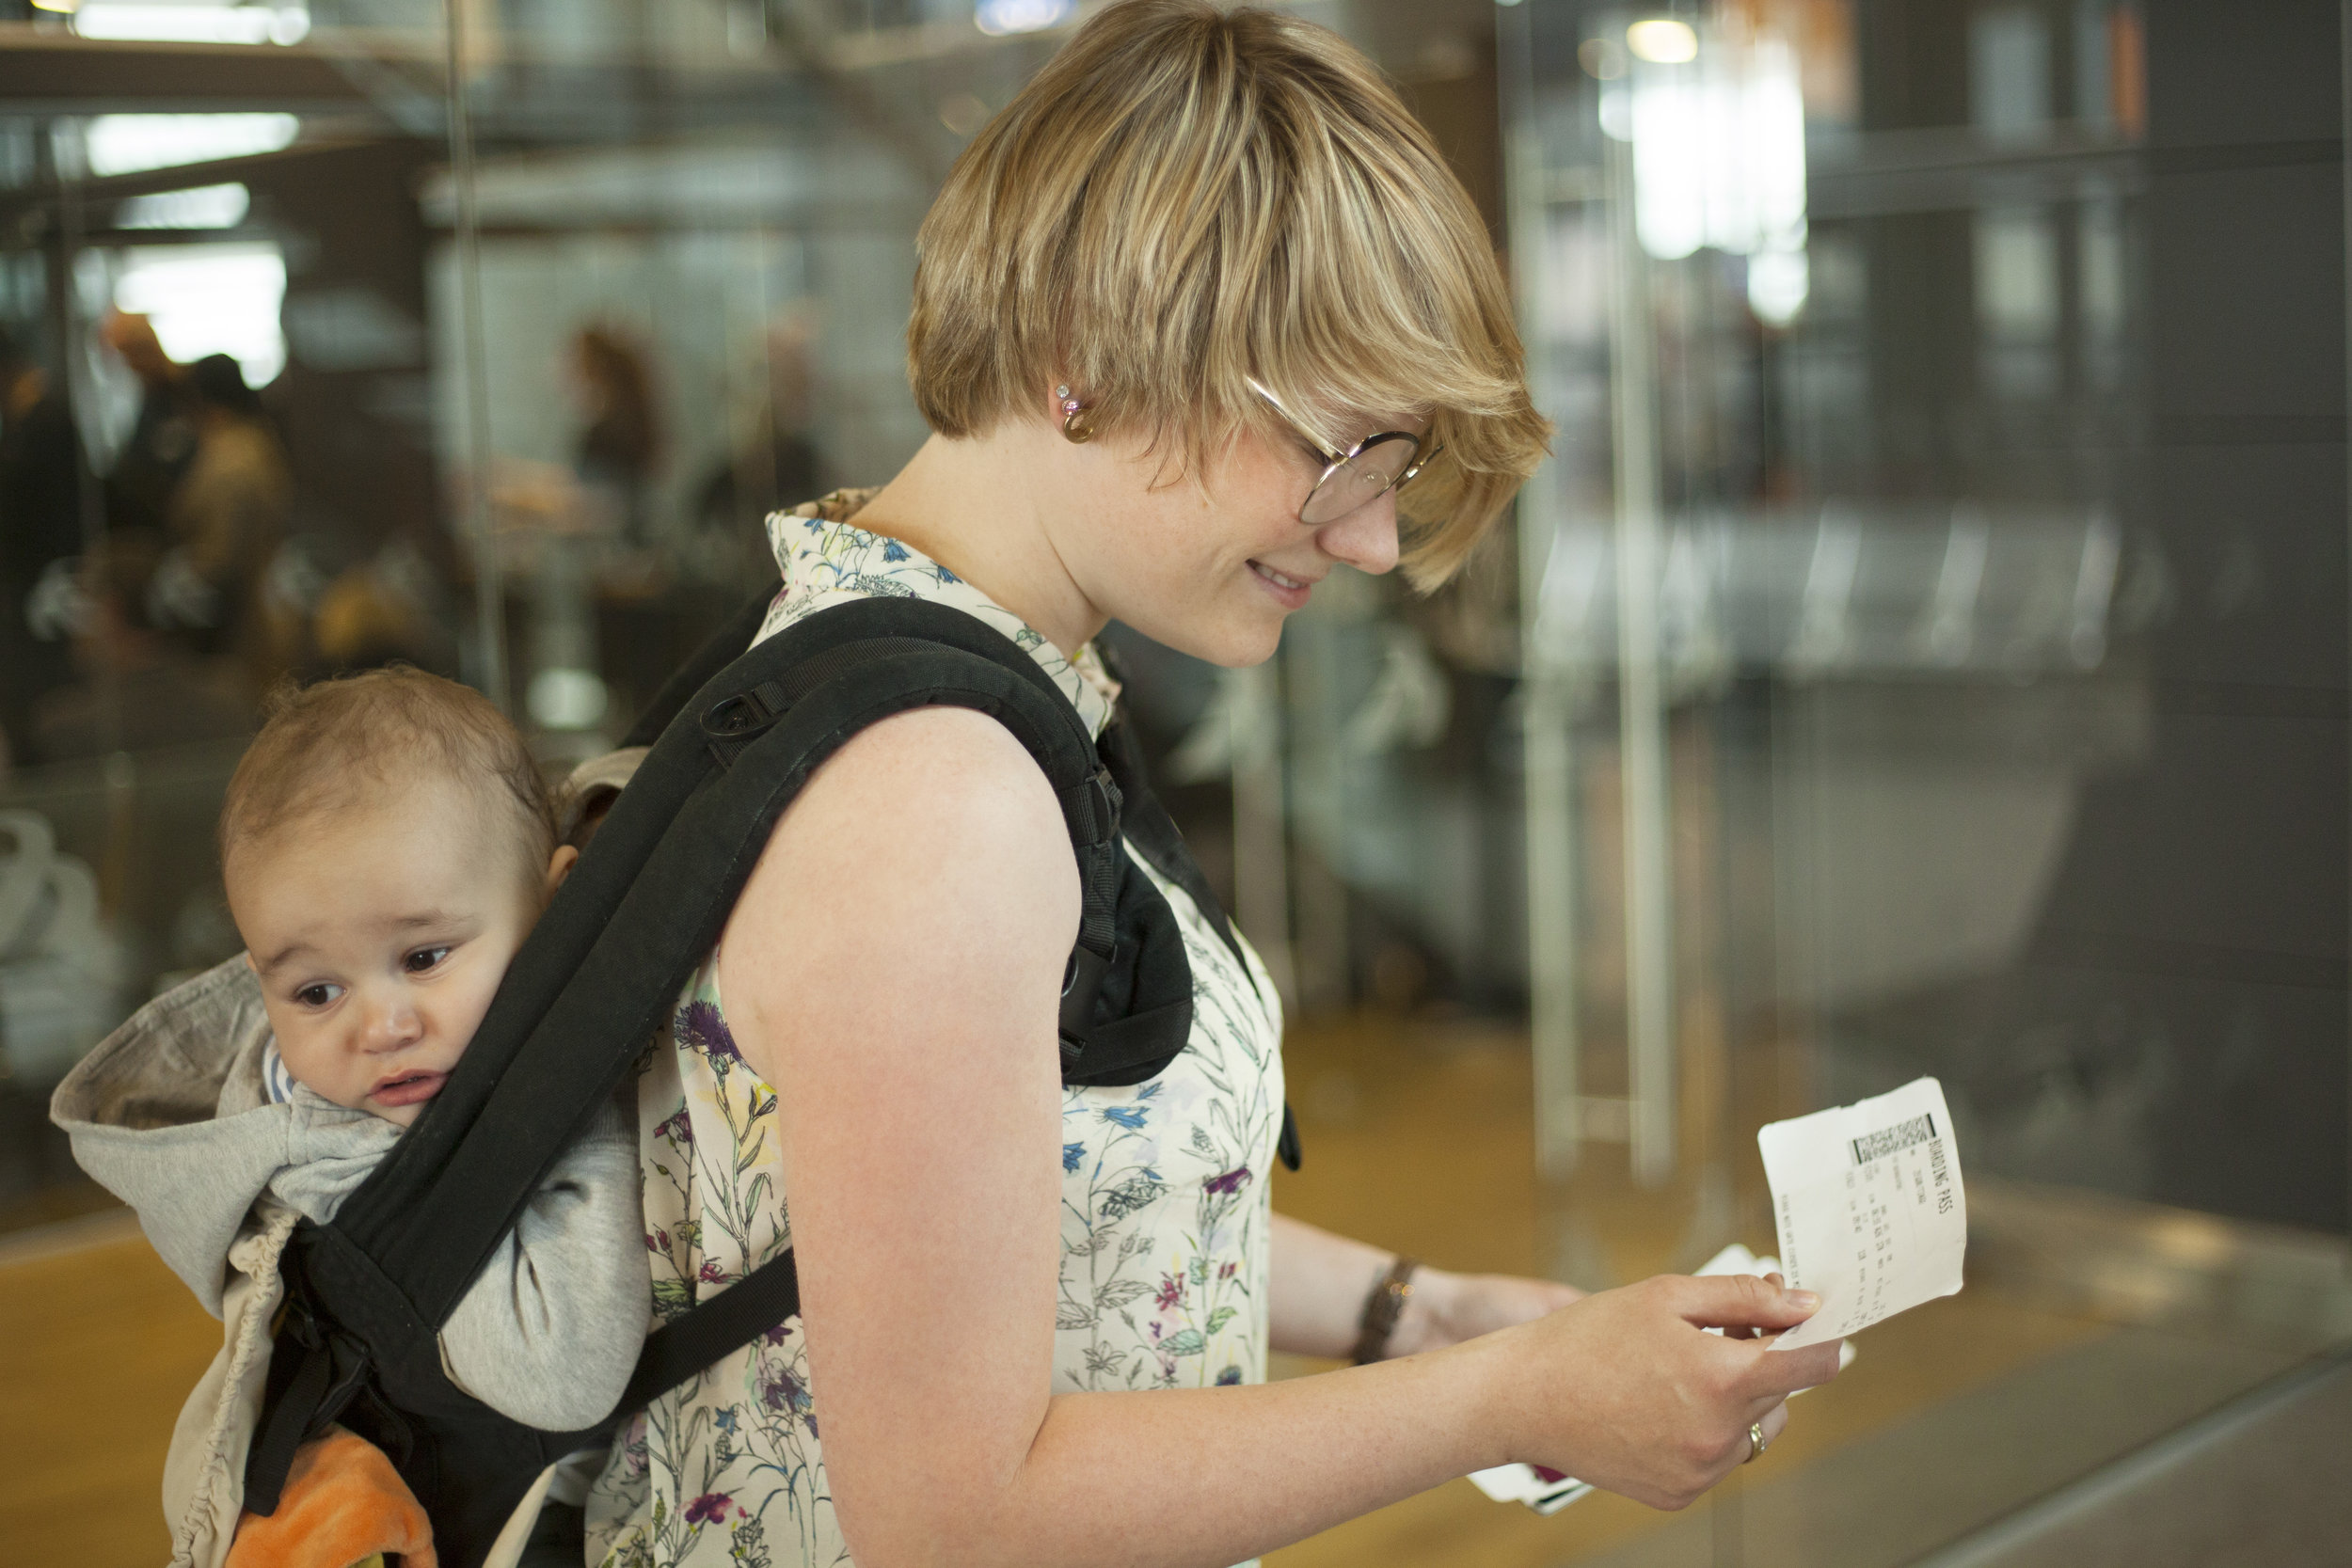 Image description: a baby is back-worn in an infant carrier while the adult looks over a boarding pass